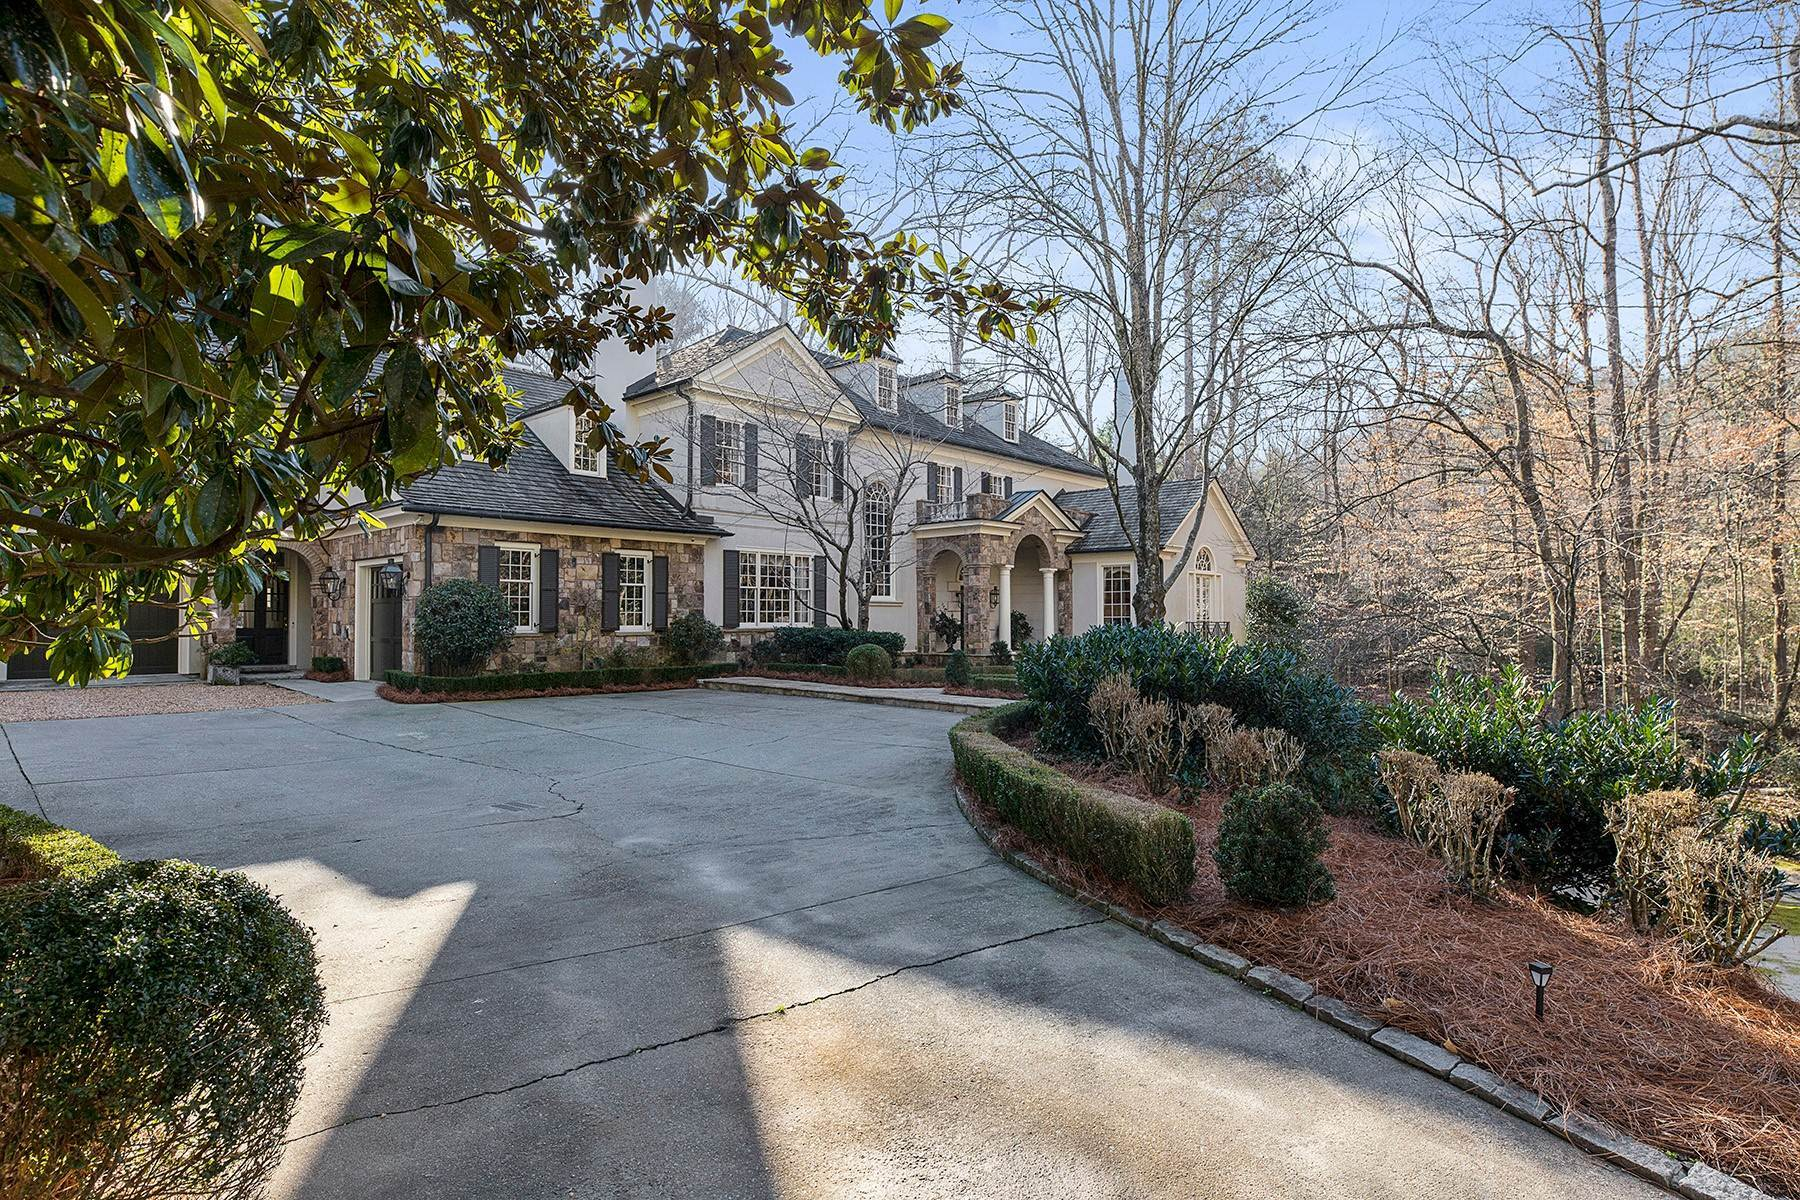 Single Family Homes for Sale at Gorgeous Home with Beautiful Interior and Exterior Architectural Detail 4359 Whitewater Creek Road NW Atlanta, Georgia 30327 United States